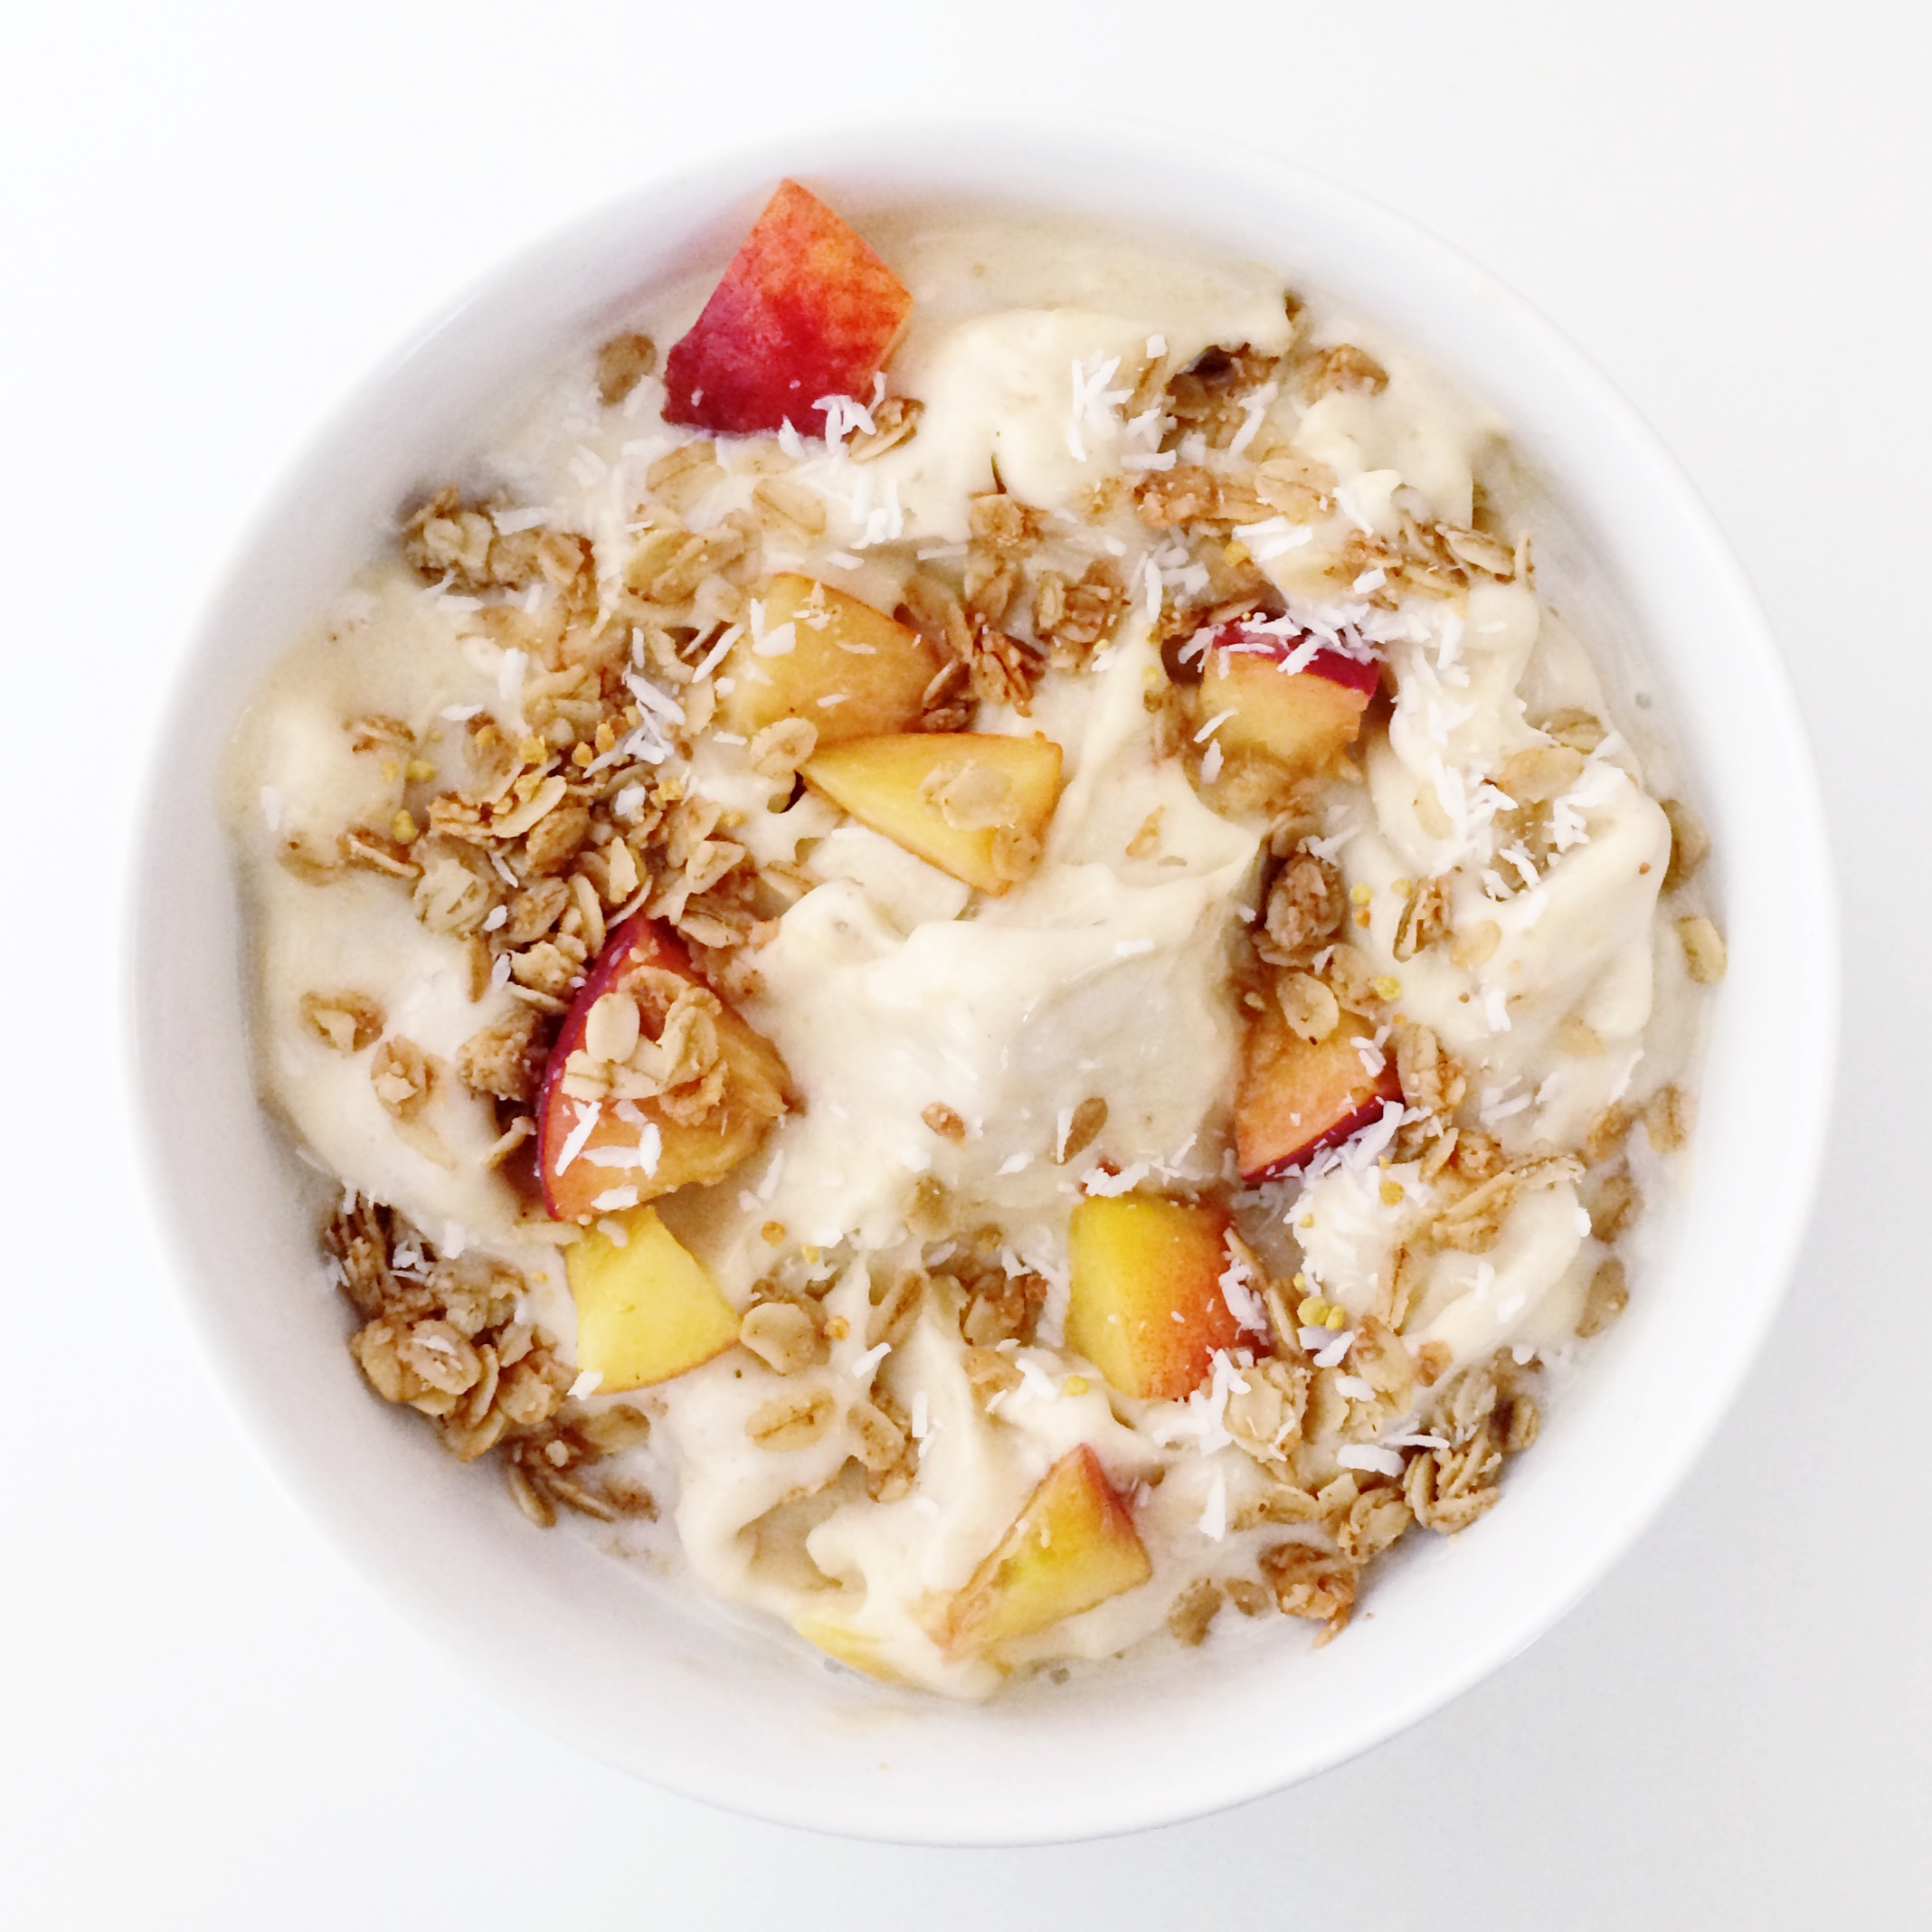 Peach ice cream with toasted granola clean food dirty city - Foods never wash cooking ...